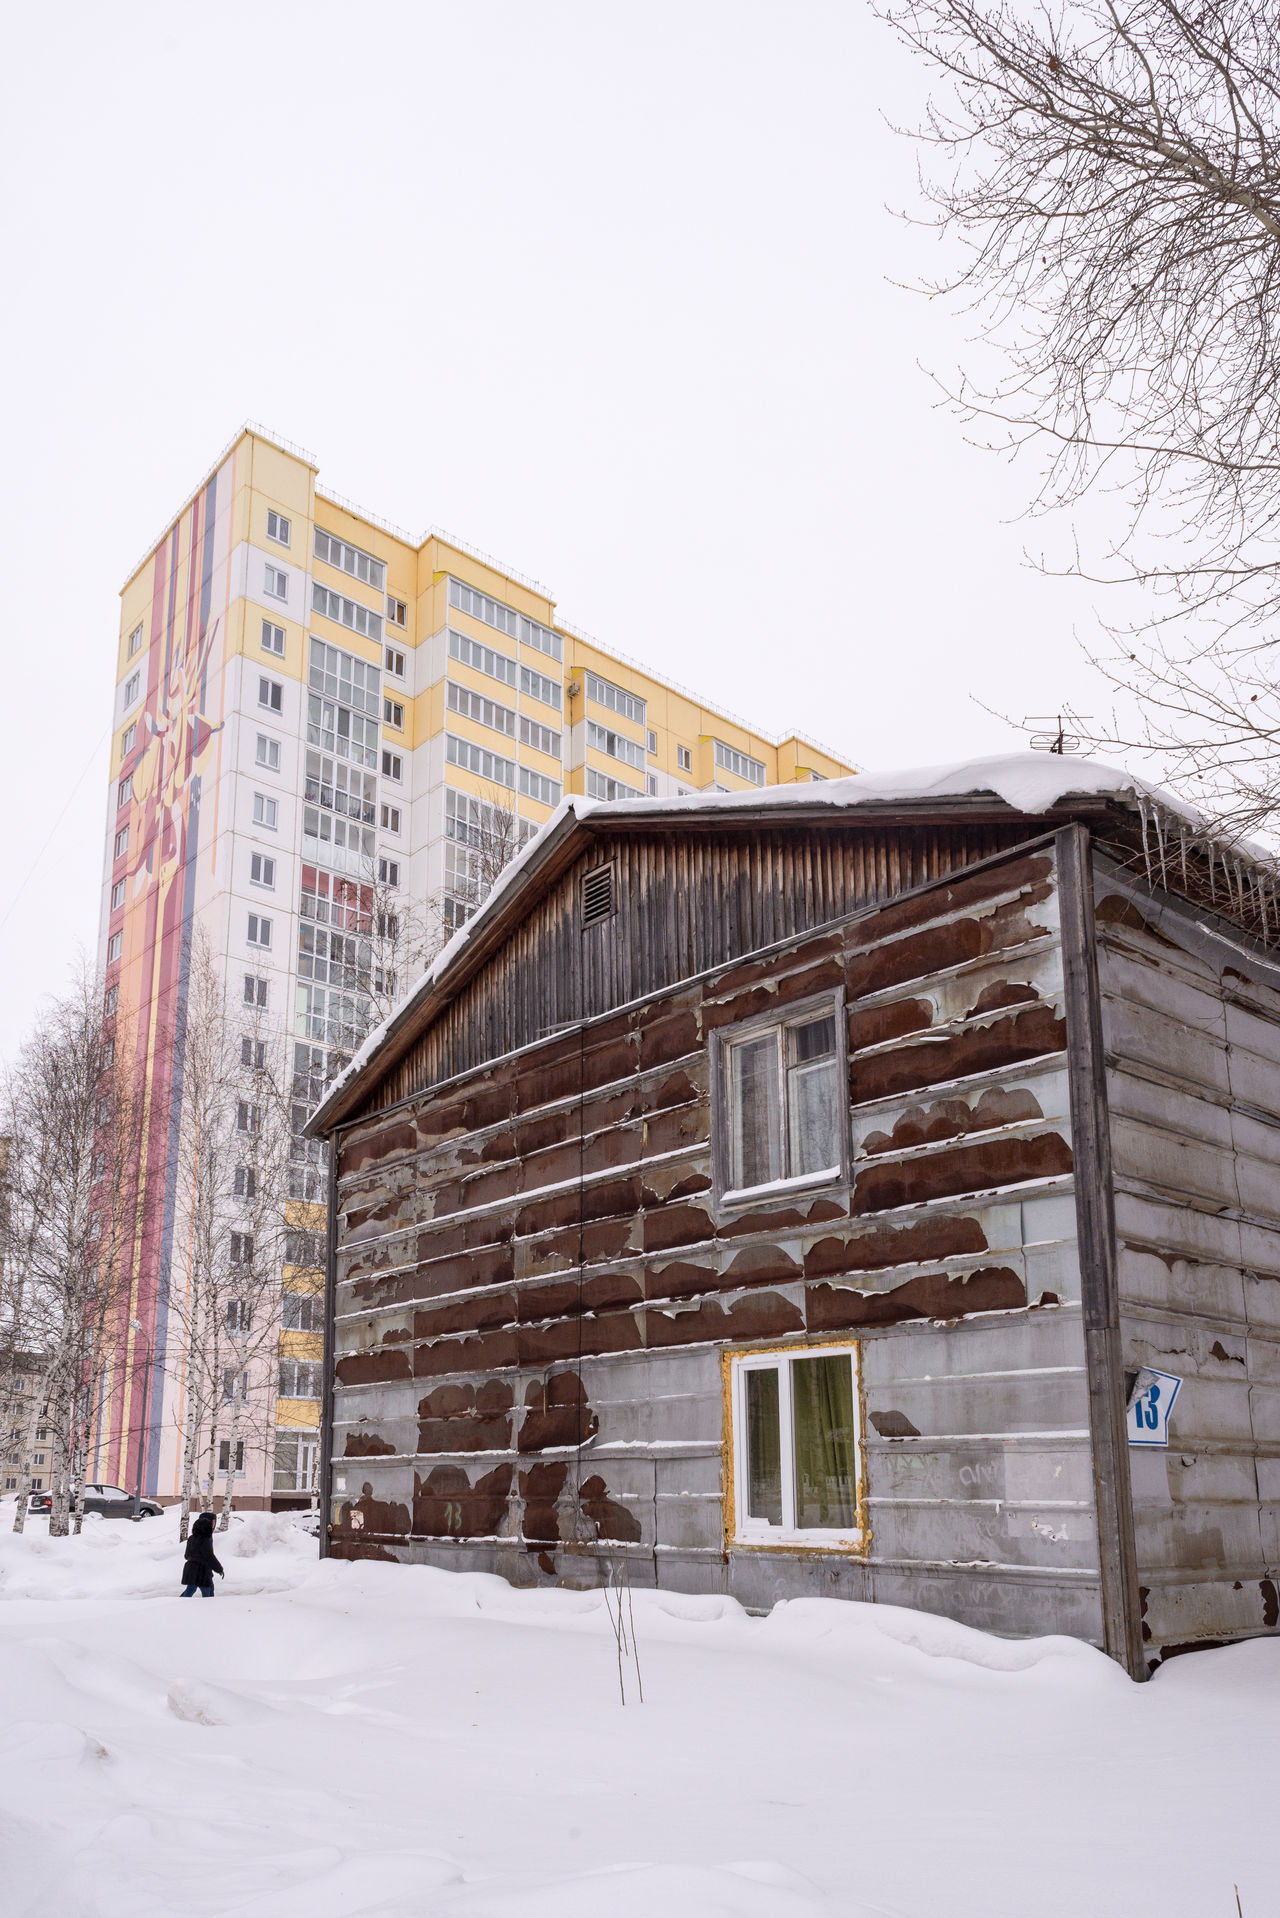 Architecture Bare Tree Building Exterior Built Structure Clear Sky Cold Temperature Day House Nature Outdoors Poor  Sky Snow Weather Winter